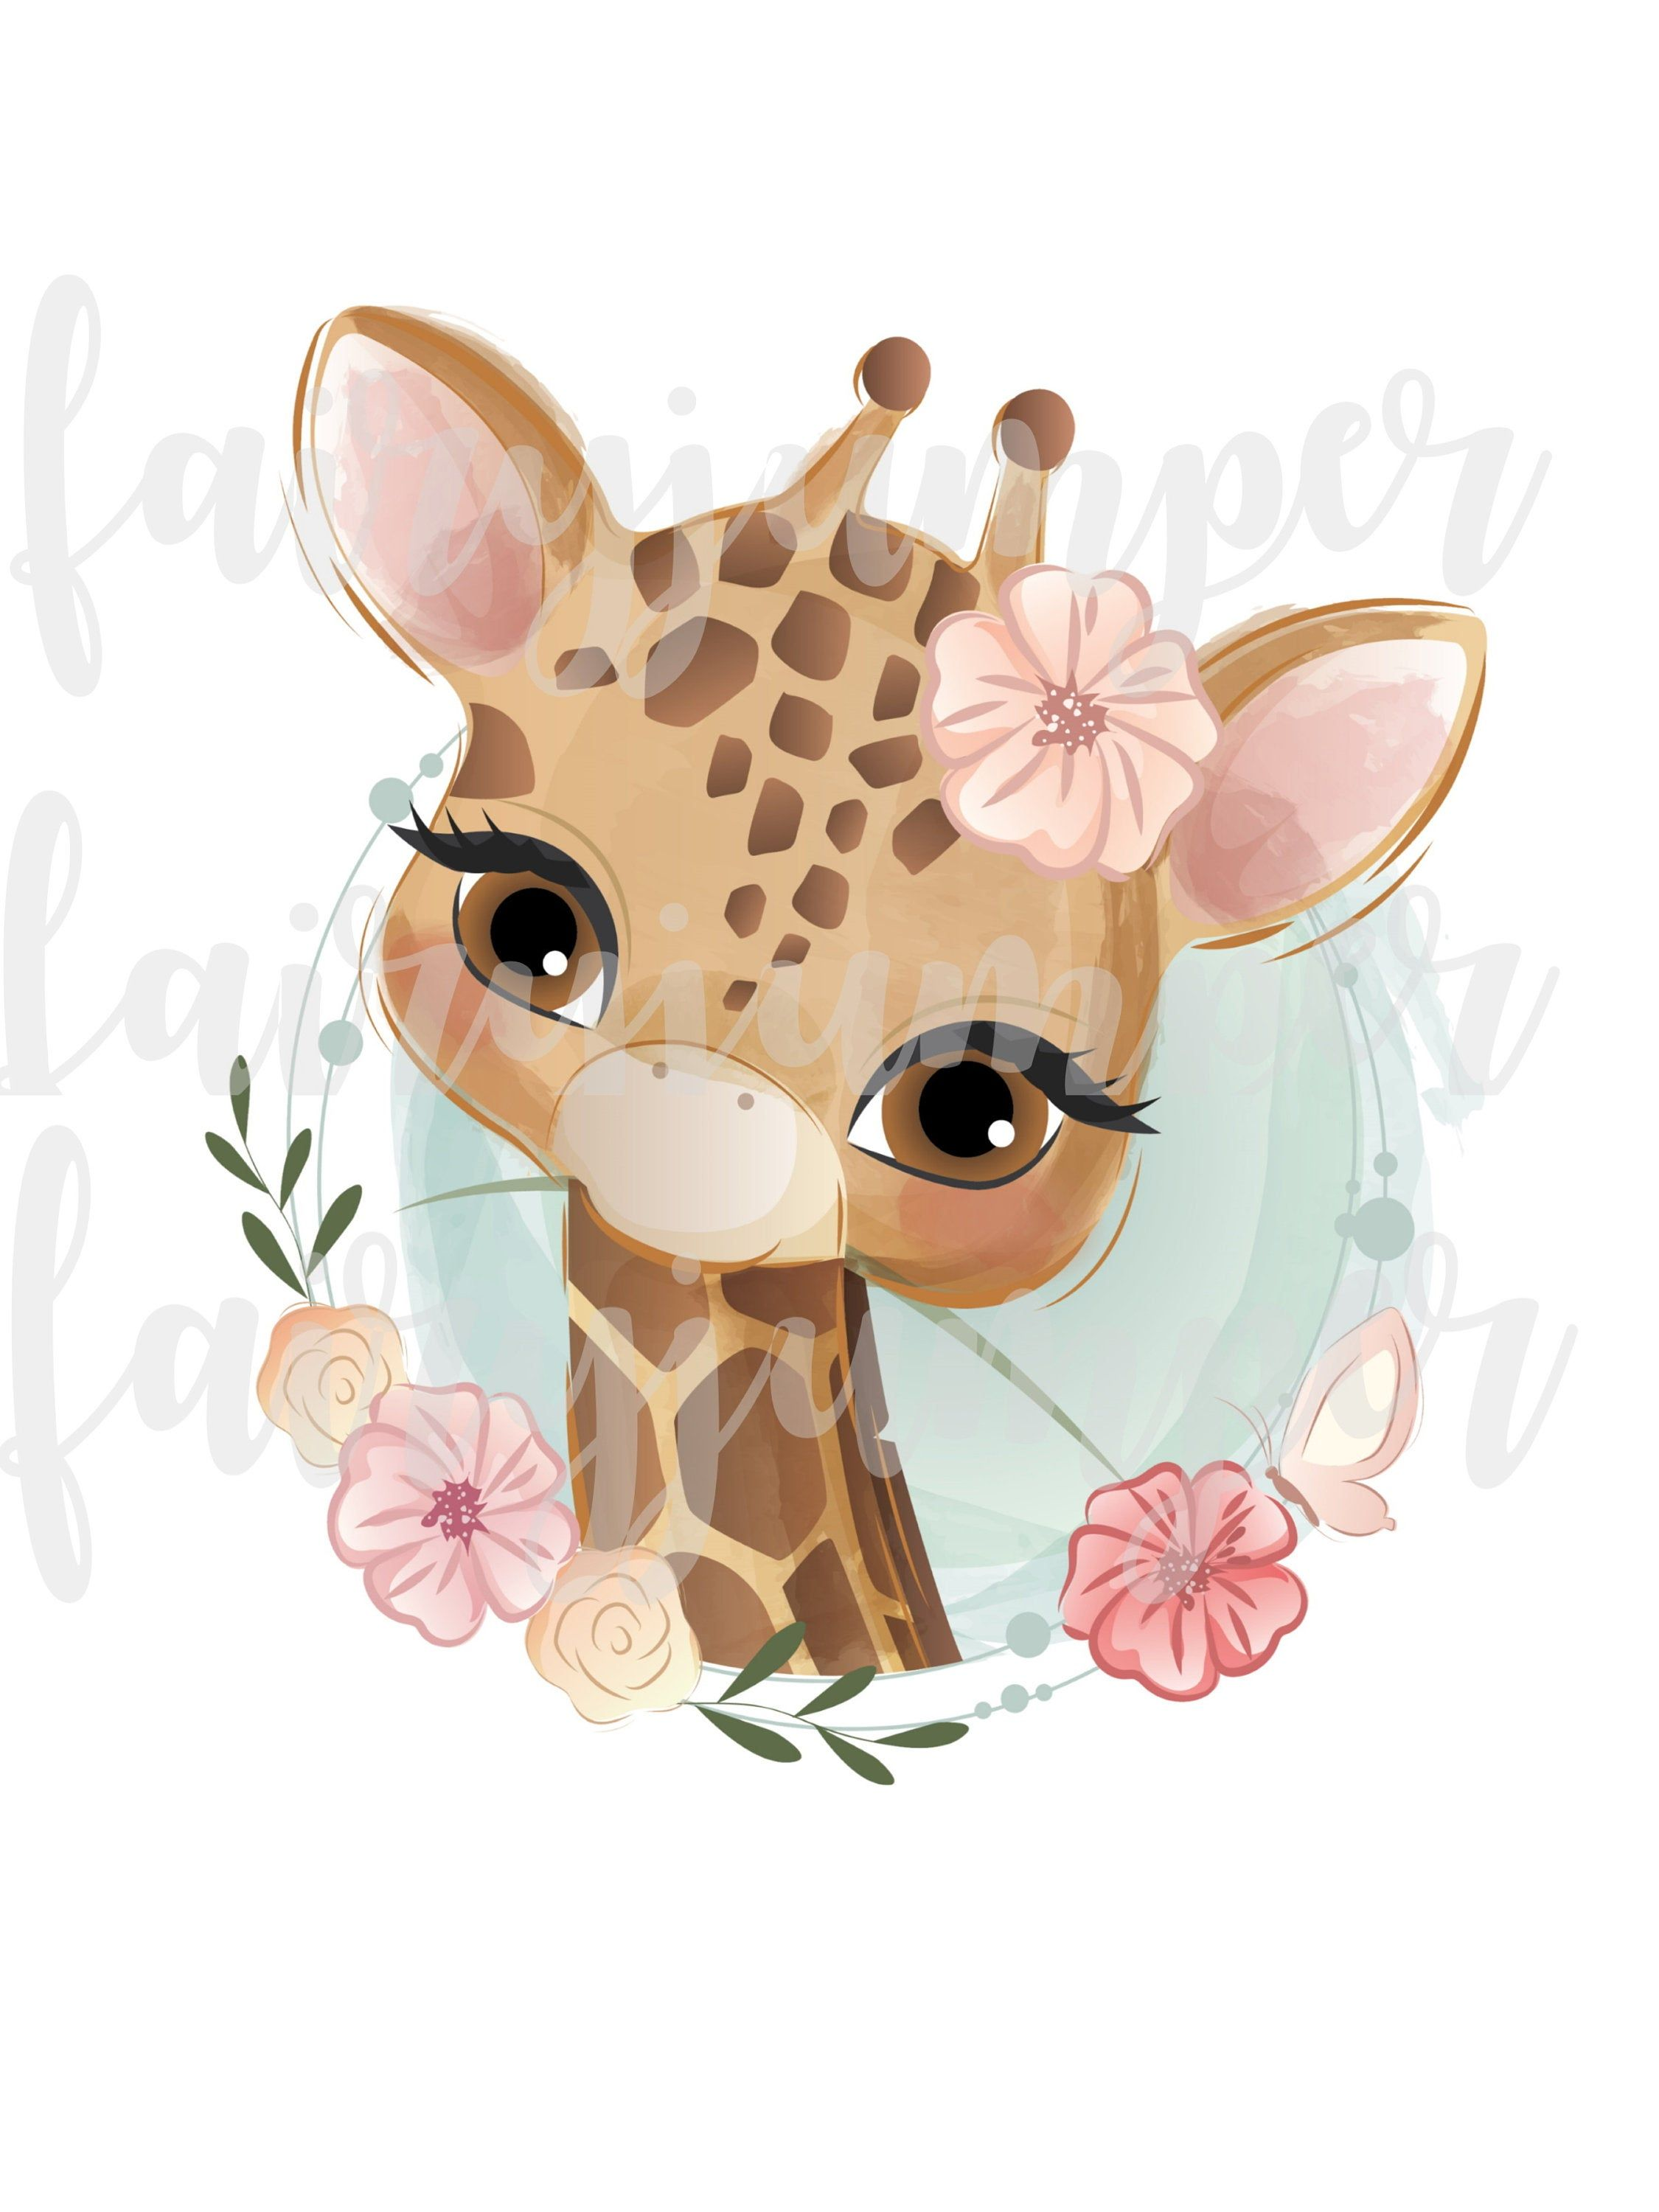 Giraffe Clipart Baby Giraffe Giraffe Watercolor Png Sublimation Graphics Transfer Instant Download Pink Flower Cr Baby Animal Drawings Baby Art Cute Art